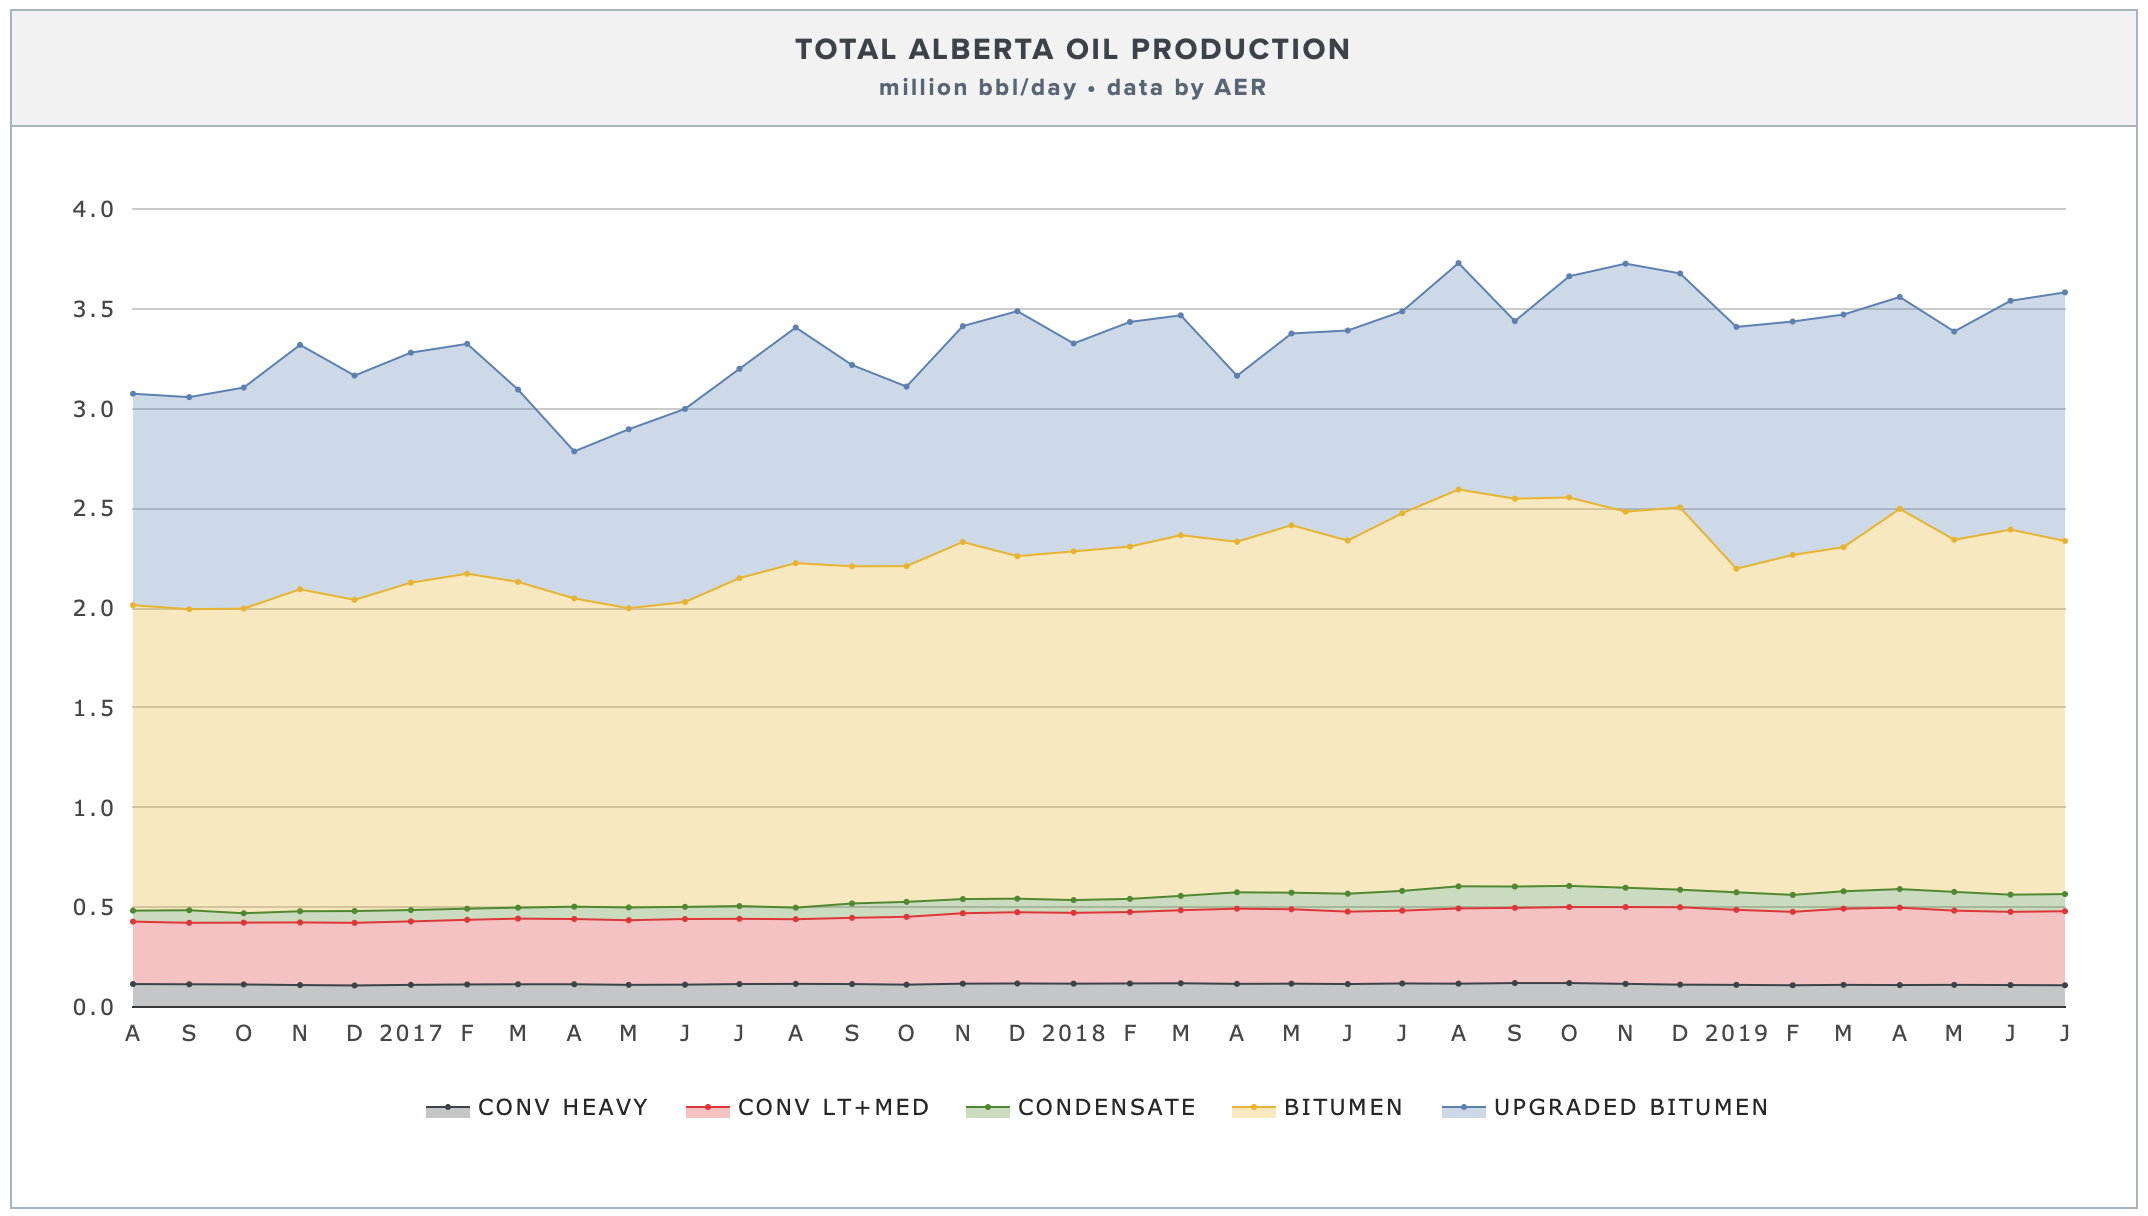 alberta-oil-production-by-type.png